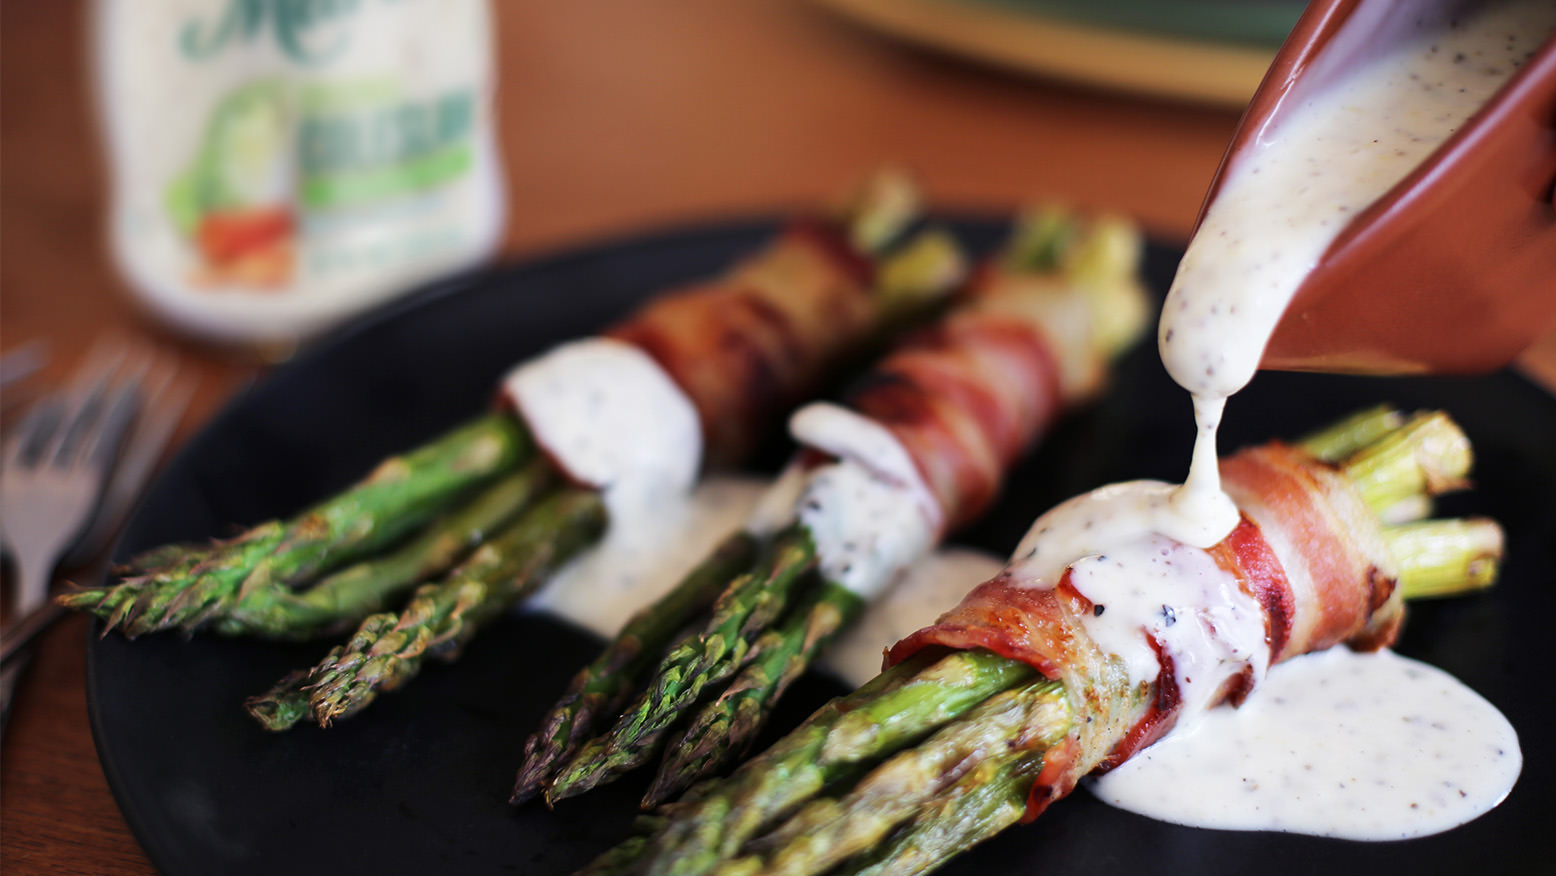 Asparagus with Bacon and Lemon Pepper Drizzle is made with Marie's Original Coleslaw Dressing.